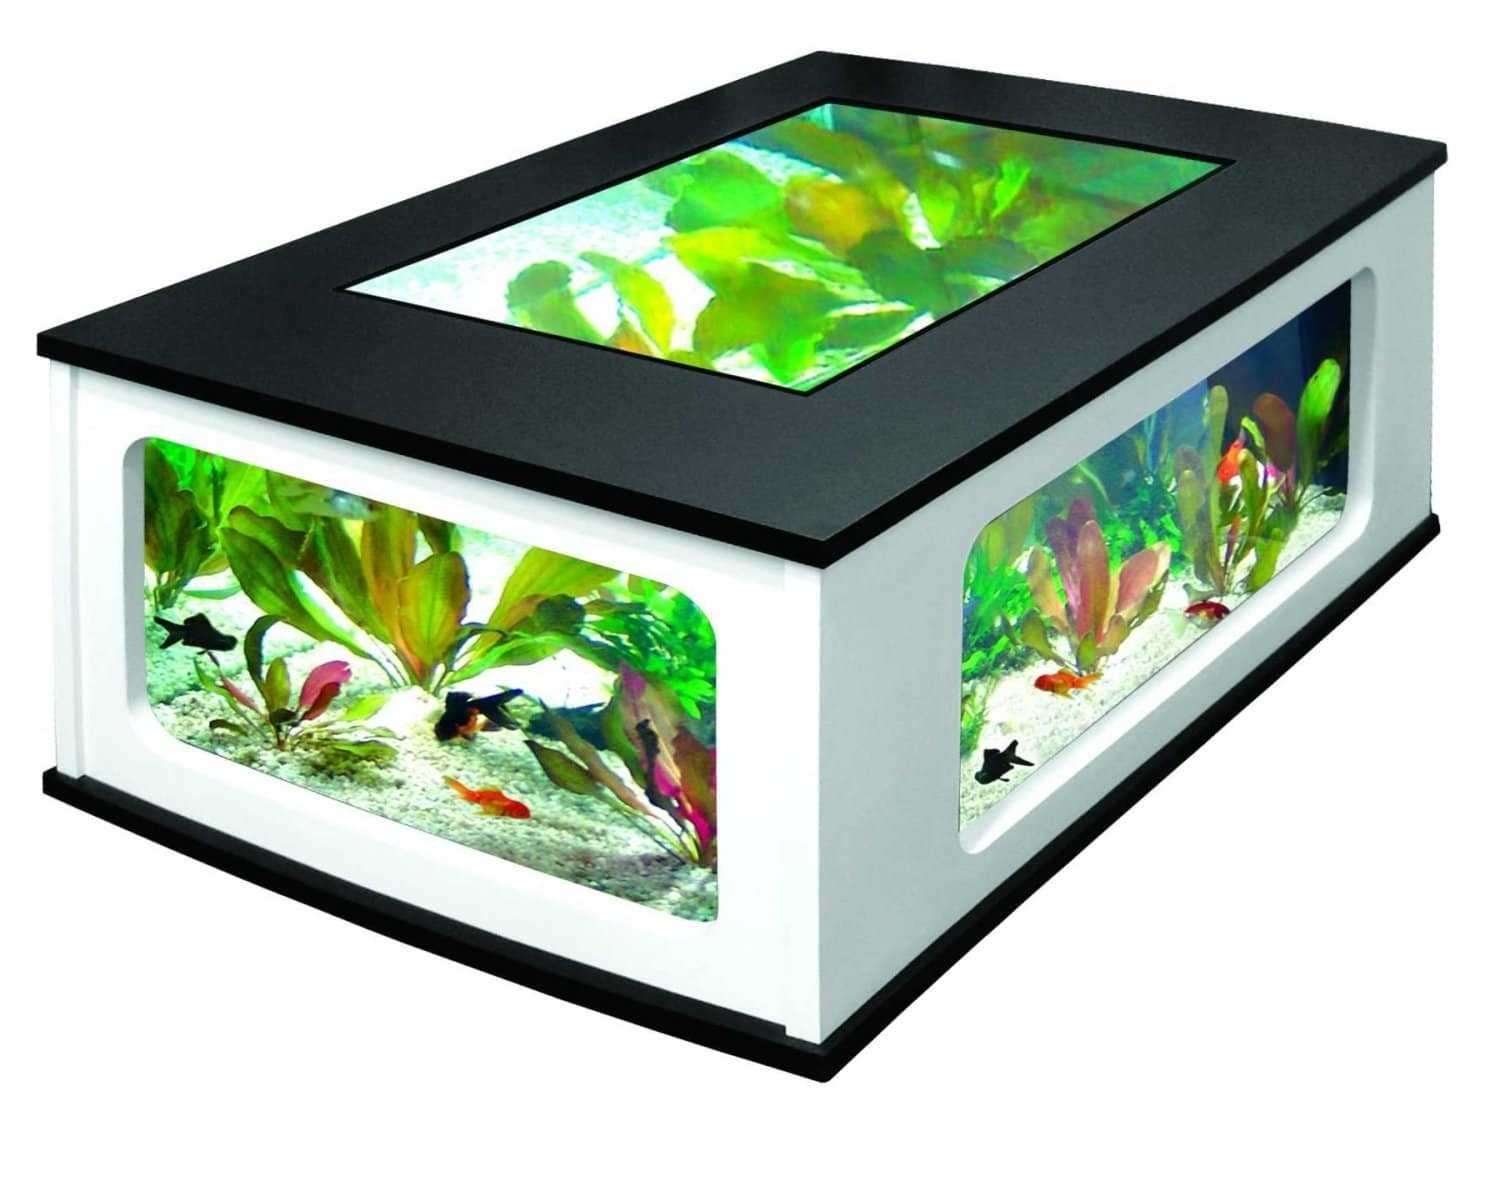 table basse aquarium objet maison insolite mr etrange. Black Bedroom Furniture Sets. Home Design Ideas